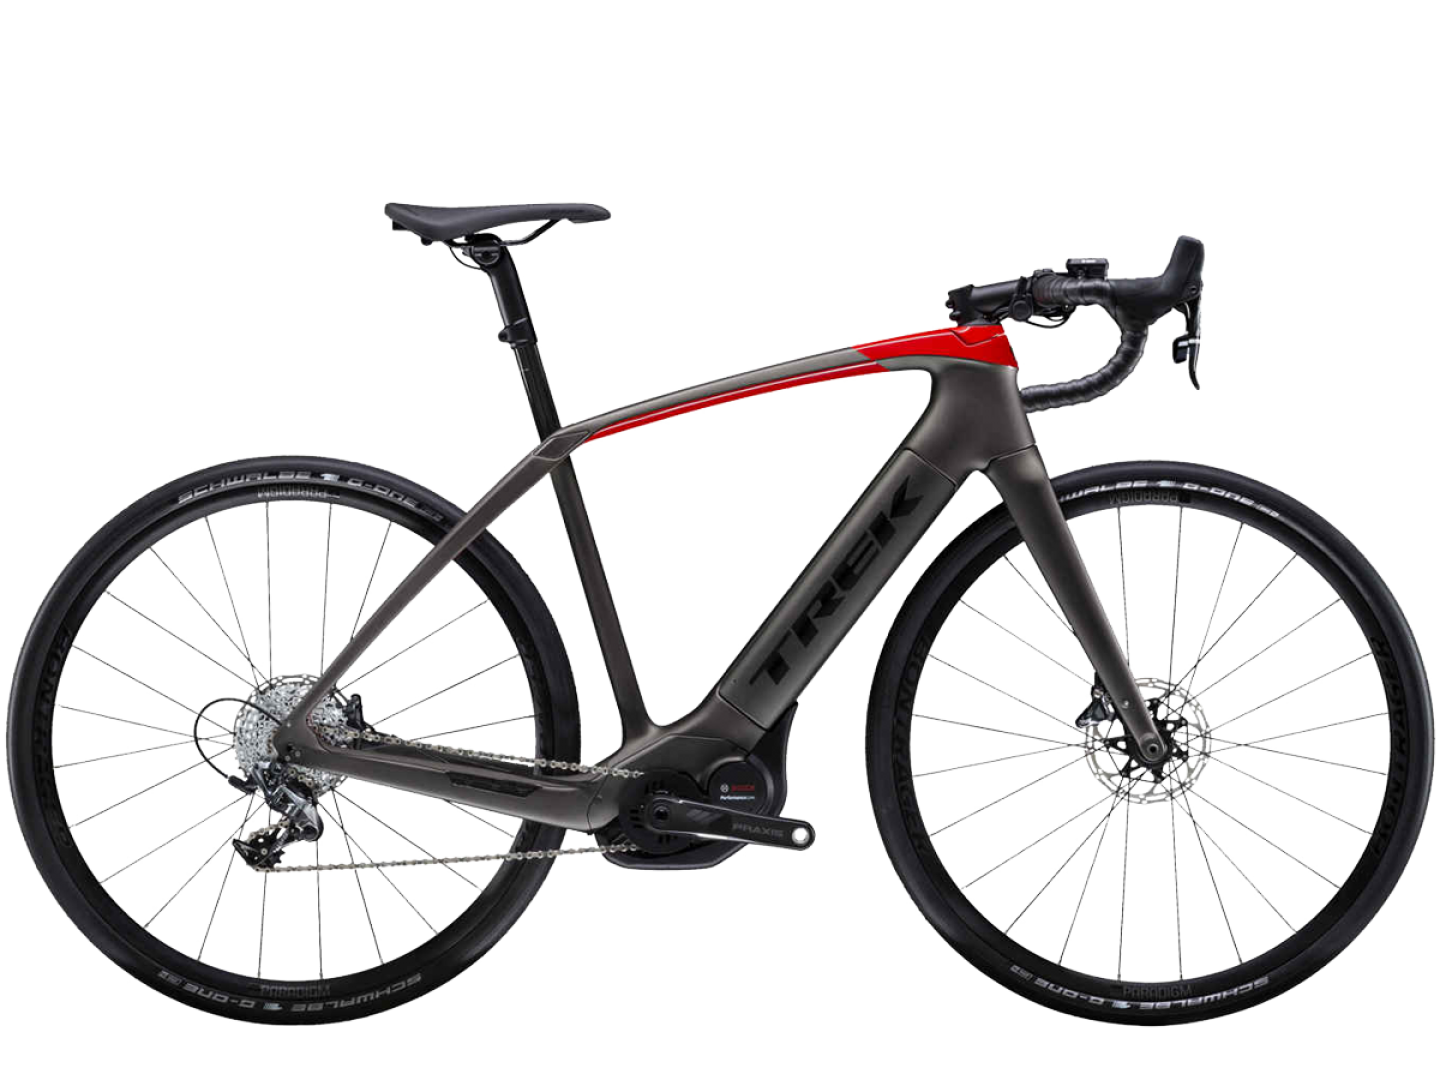 In To 2019 161 Rent An Electric Road Bike In Mallorca Rent